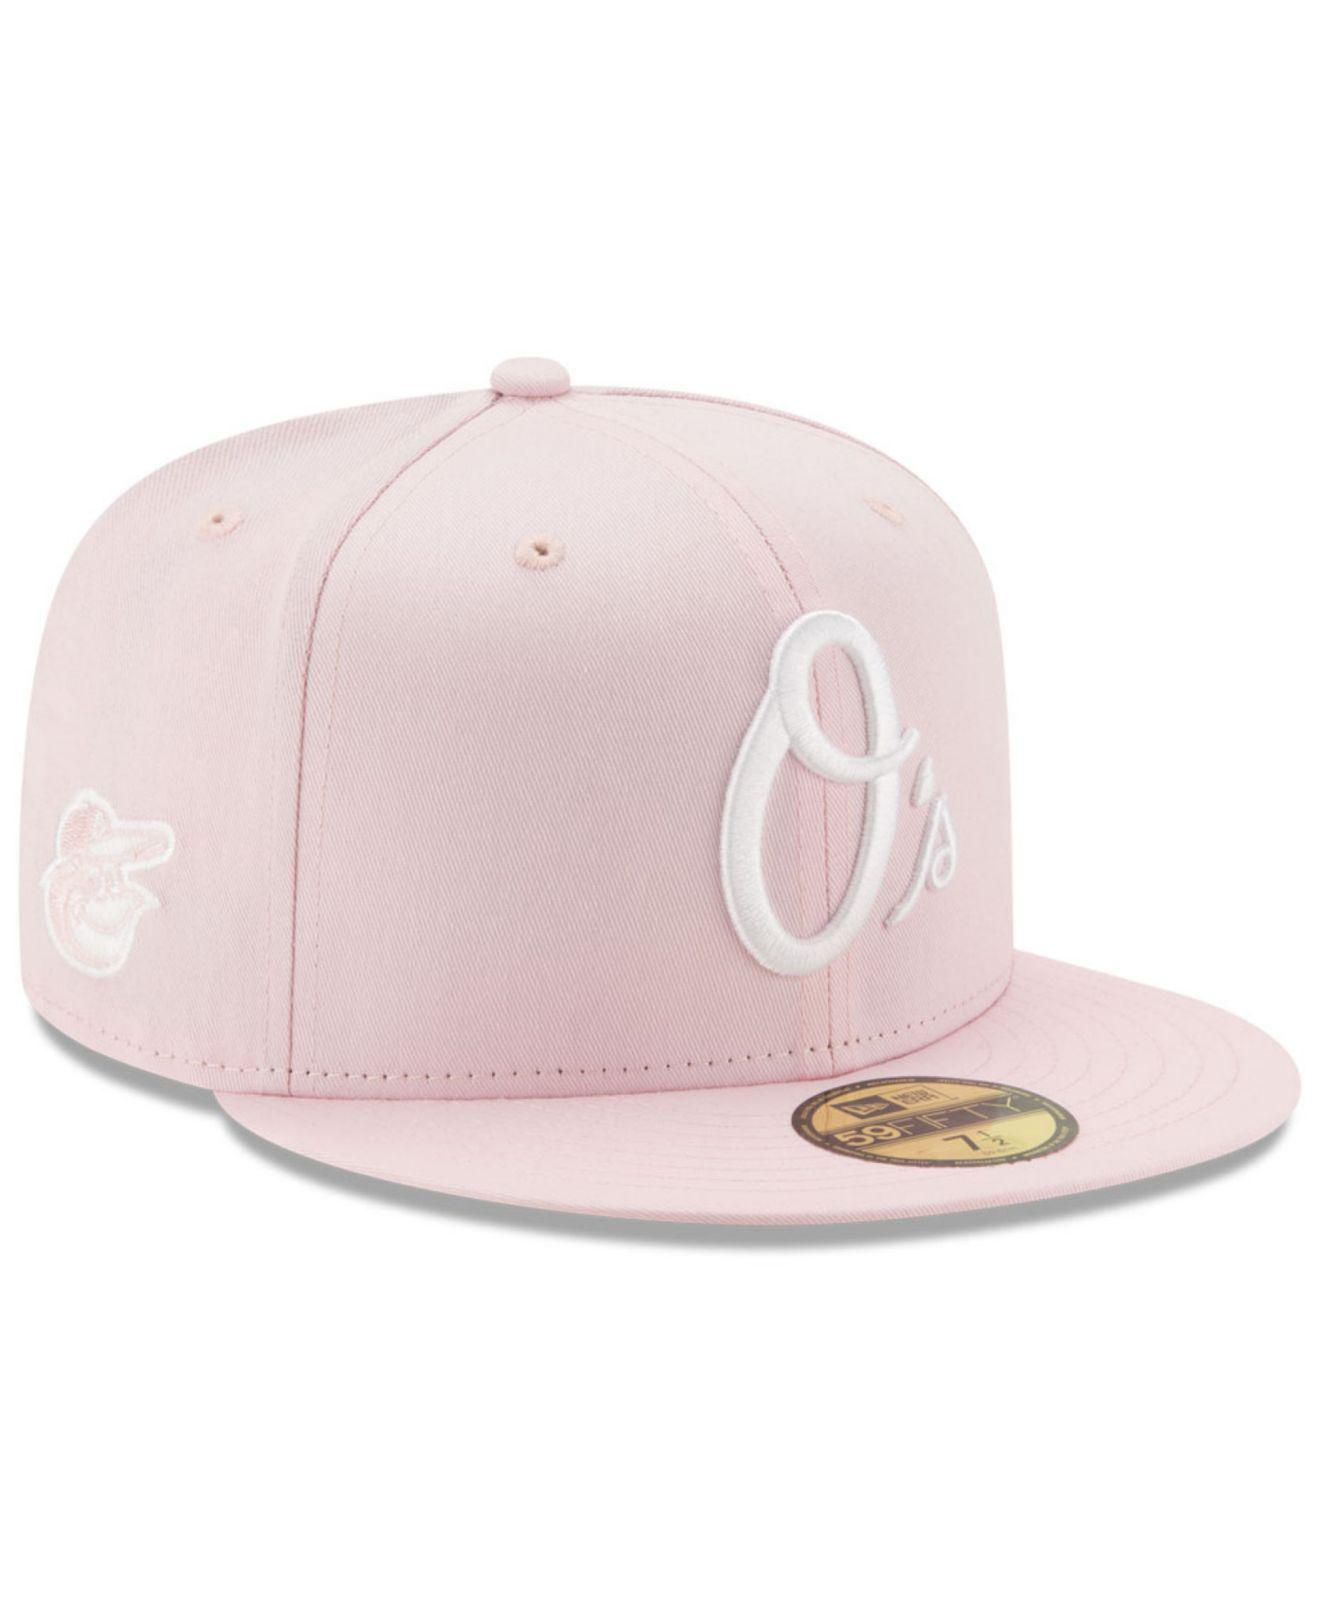 new style 891a7 a0244 coupon for cardinal red baltimore orioles new era mlb c dub 59fifty cap  ye599719 961b2 bc6b9  order ktz. womens pink c dub patch 59fifty cap afb6c  88e06